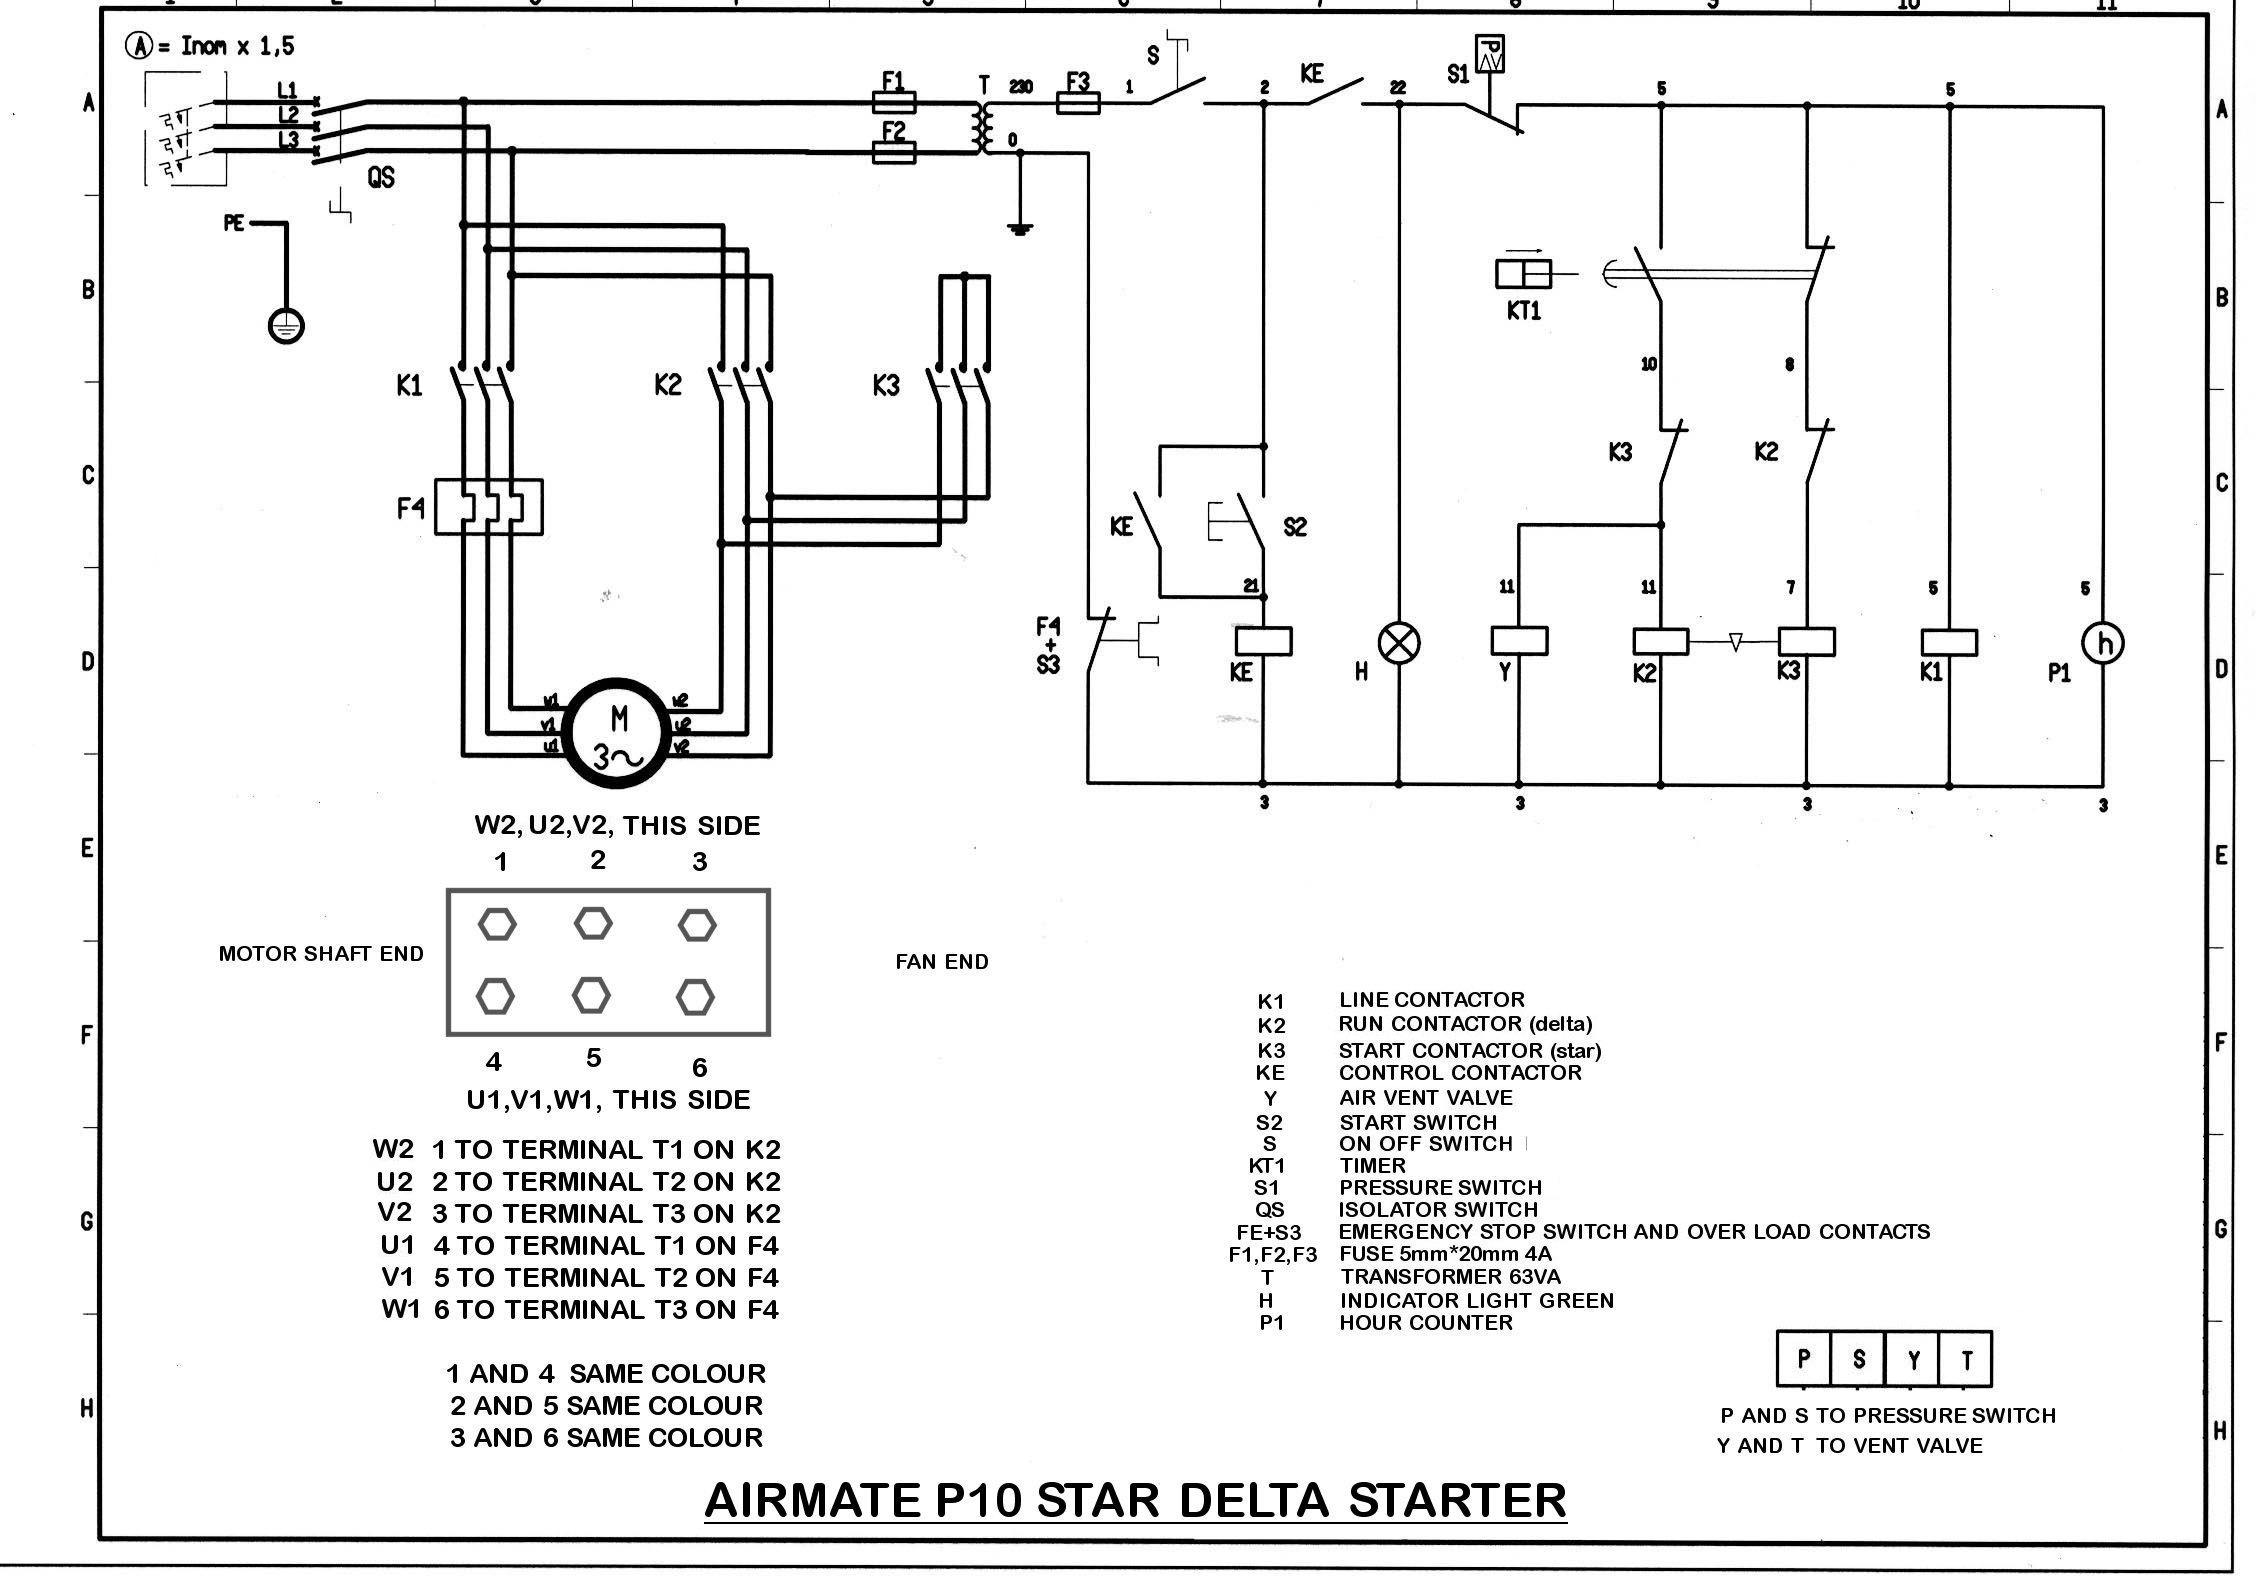 Airmate_P10_wiring airmate p10 270 compressor wiring diagram compressor wiring diagram at bayanpartner.co